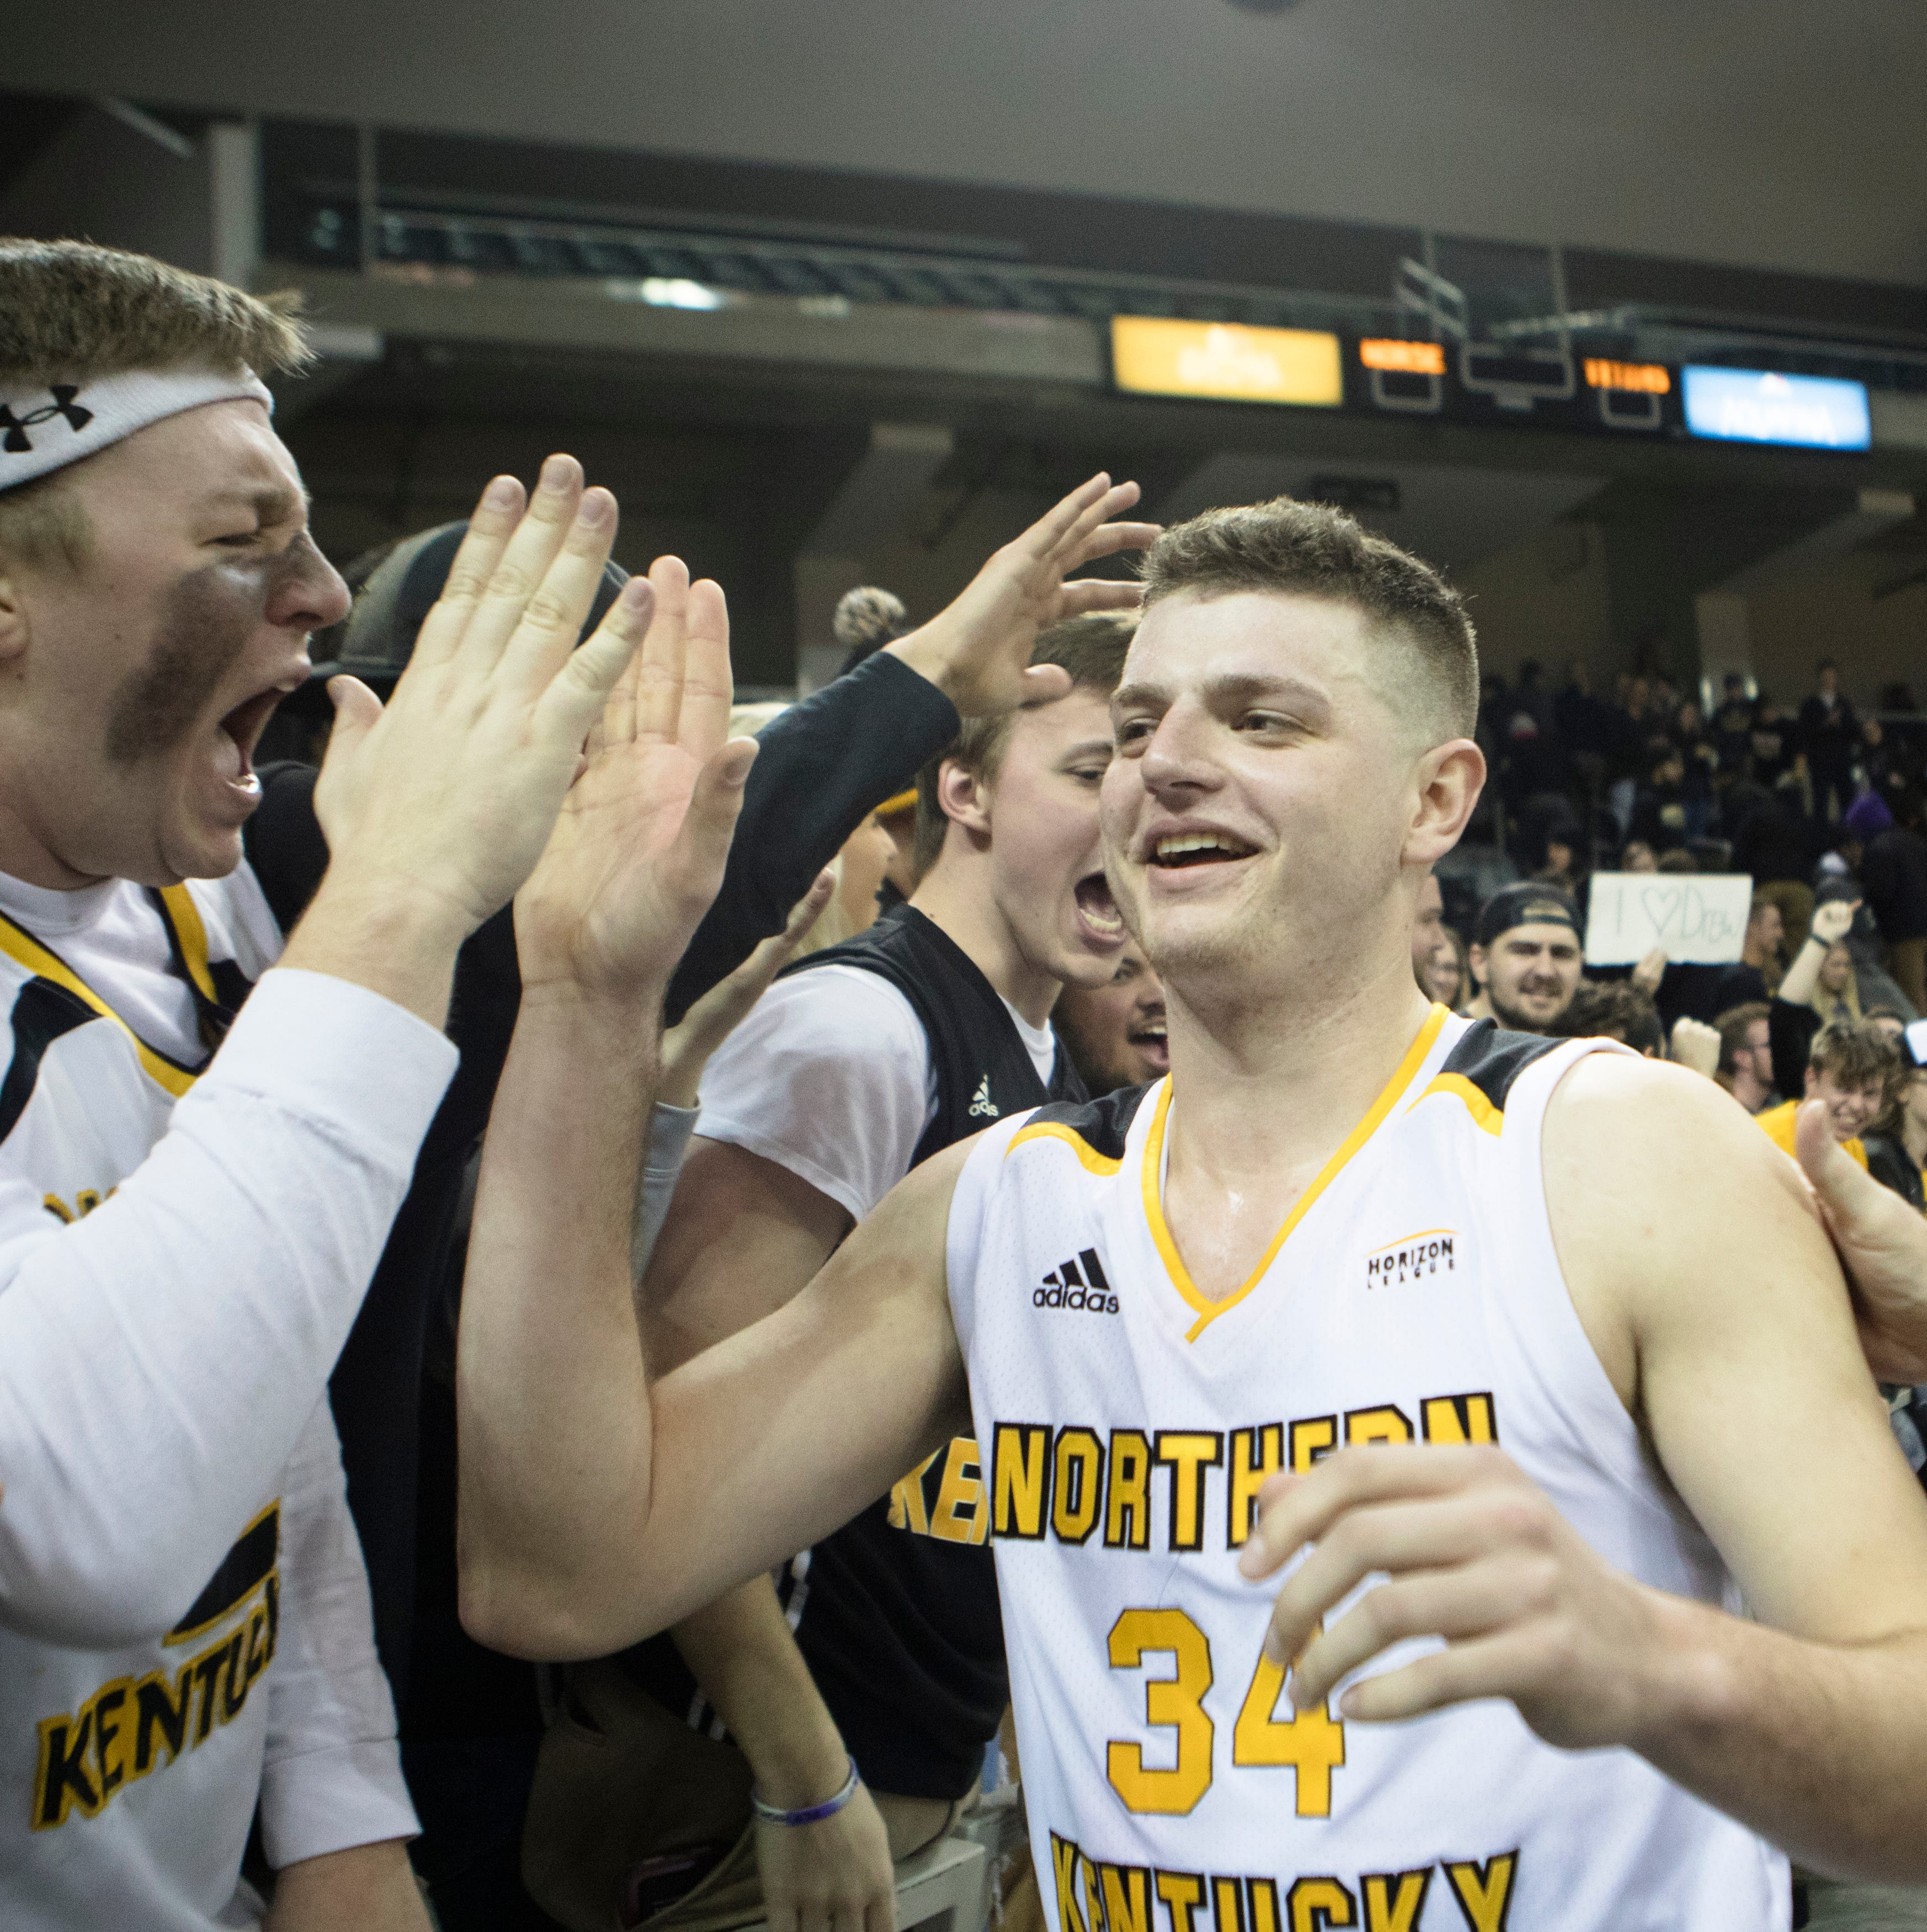 4 Kentucky colleges likely going to NCAA tourney with NKU's bid clinched